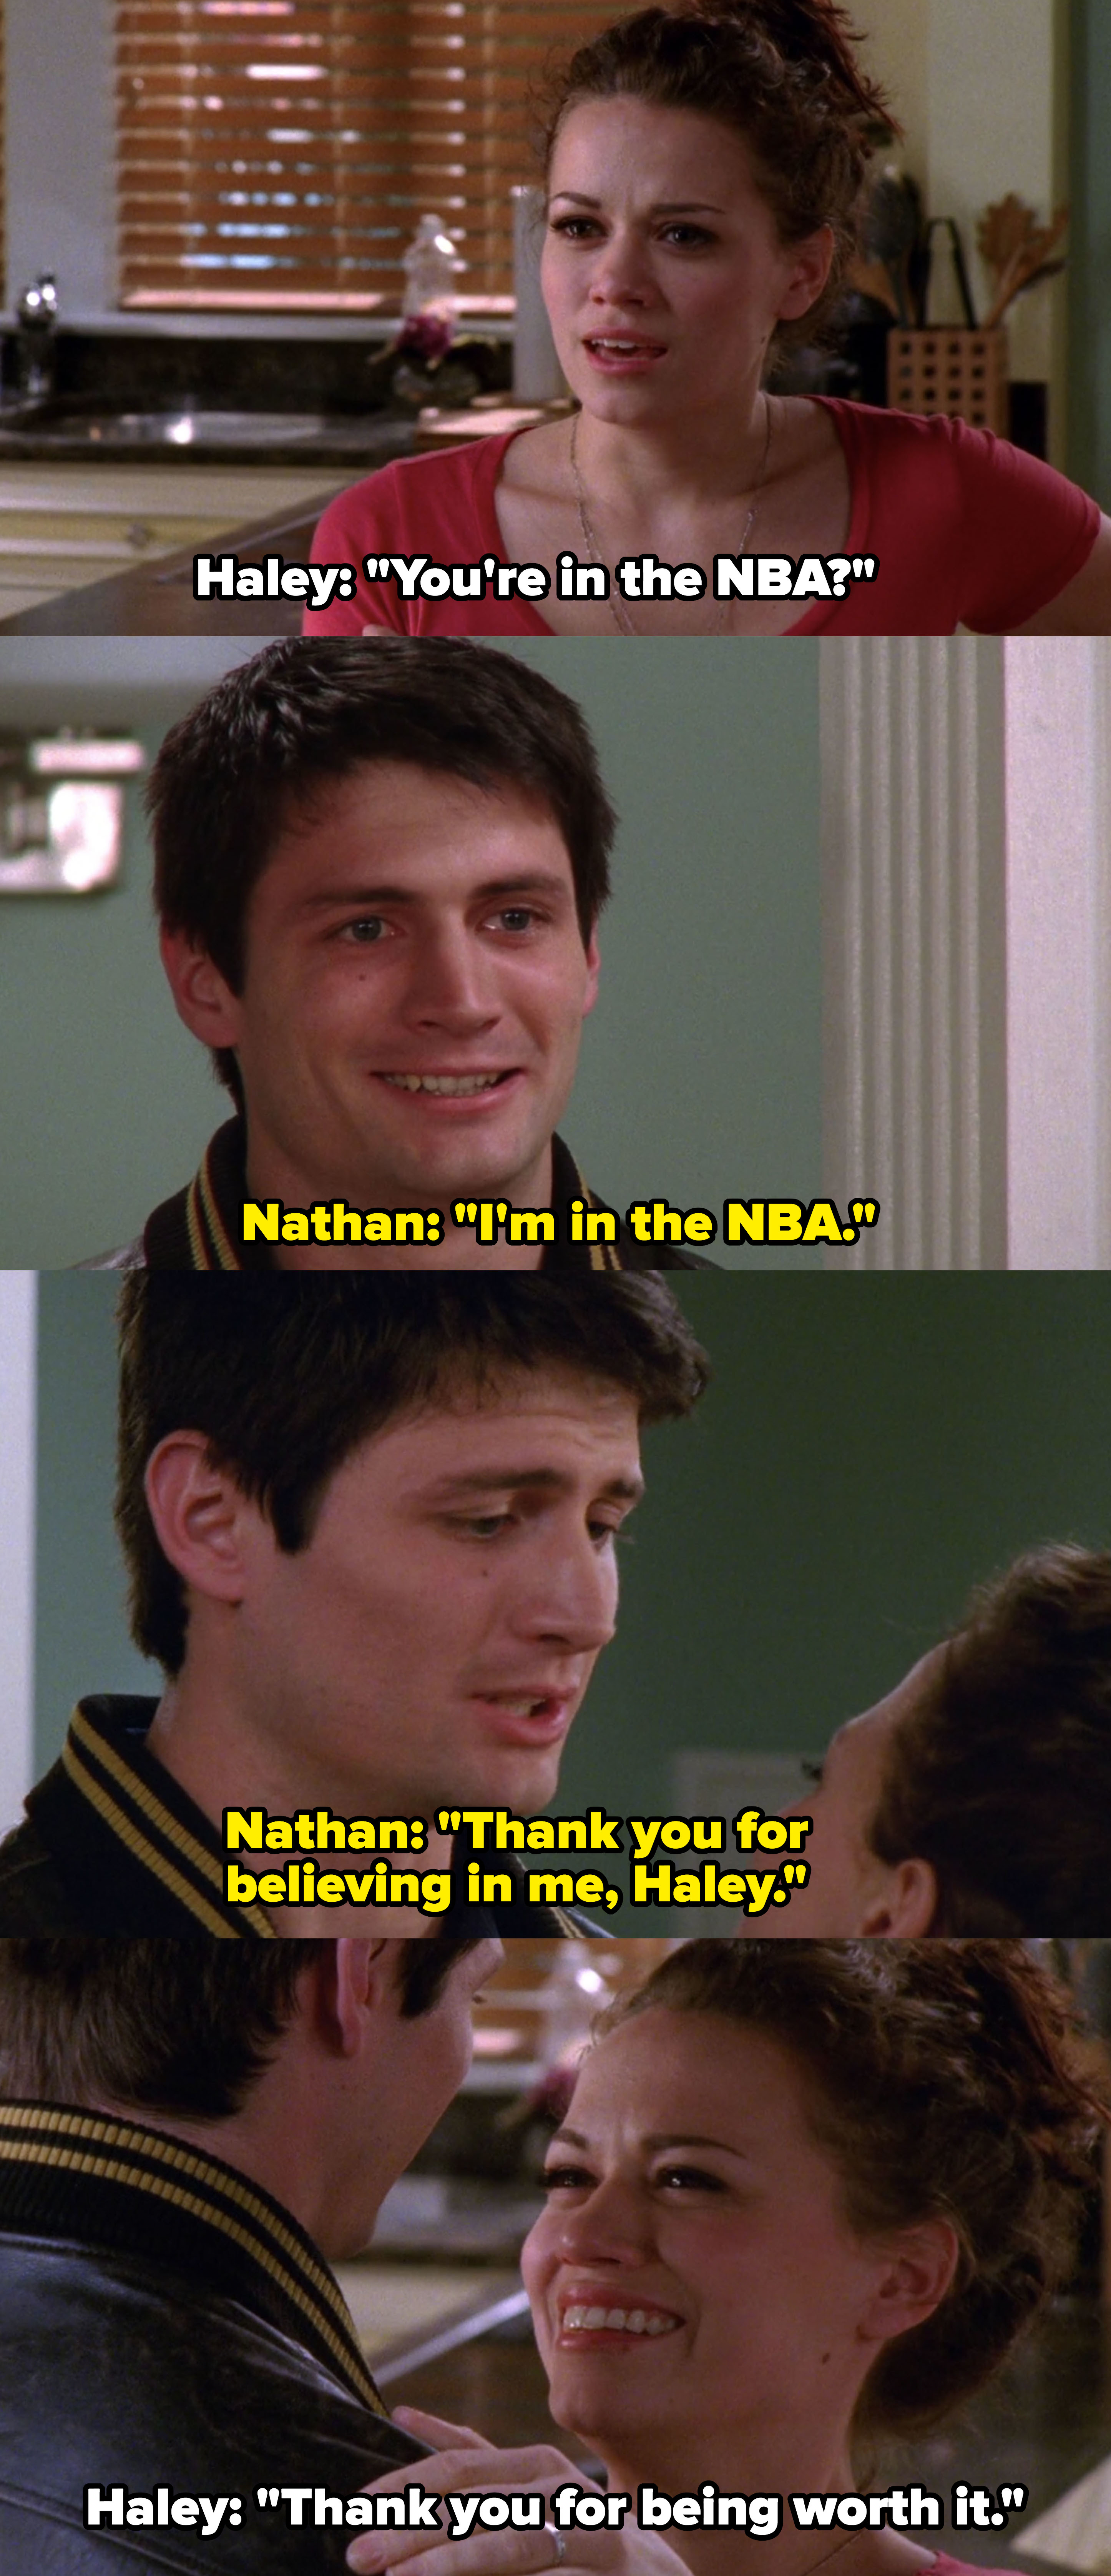 """Nathan thanks Haley for believing in him, Haley replies, """"Thank you for being worth it"""""""